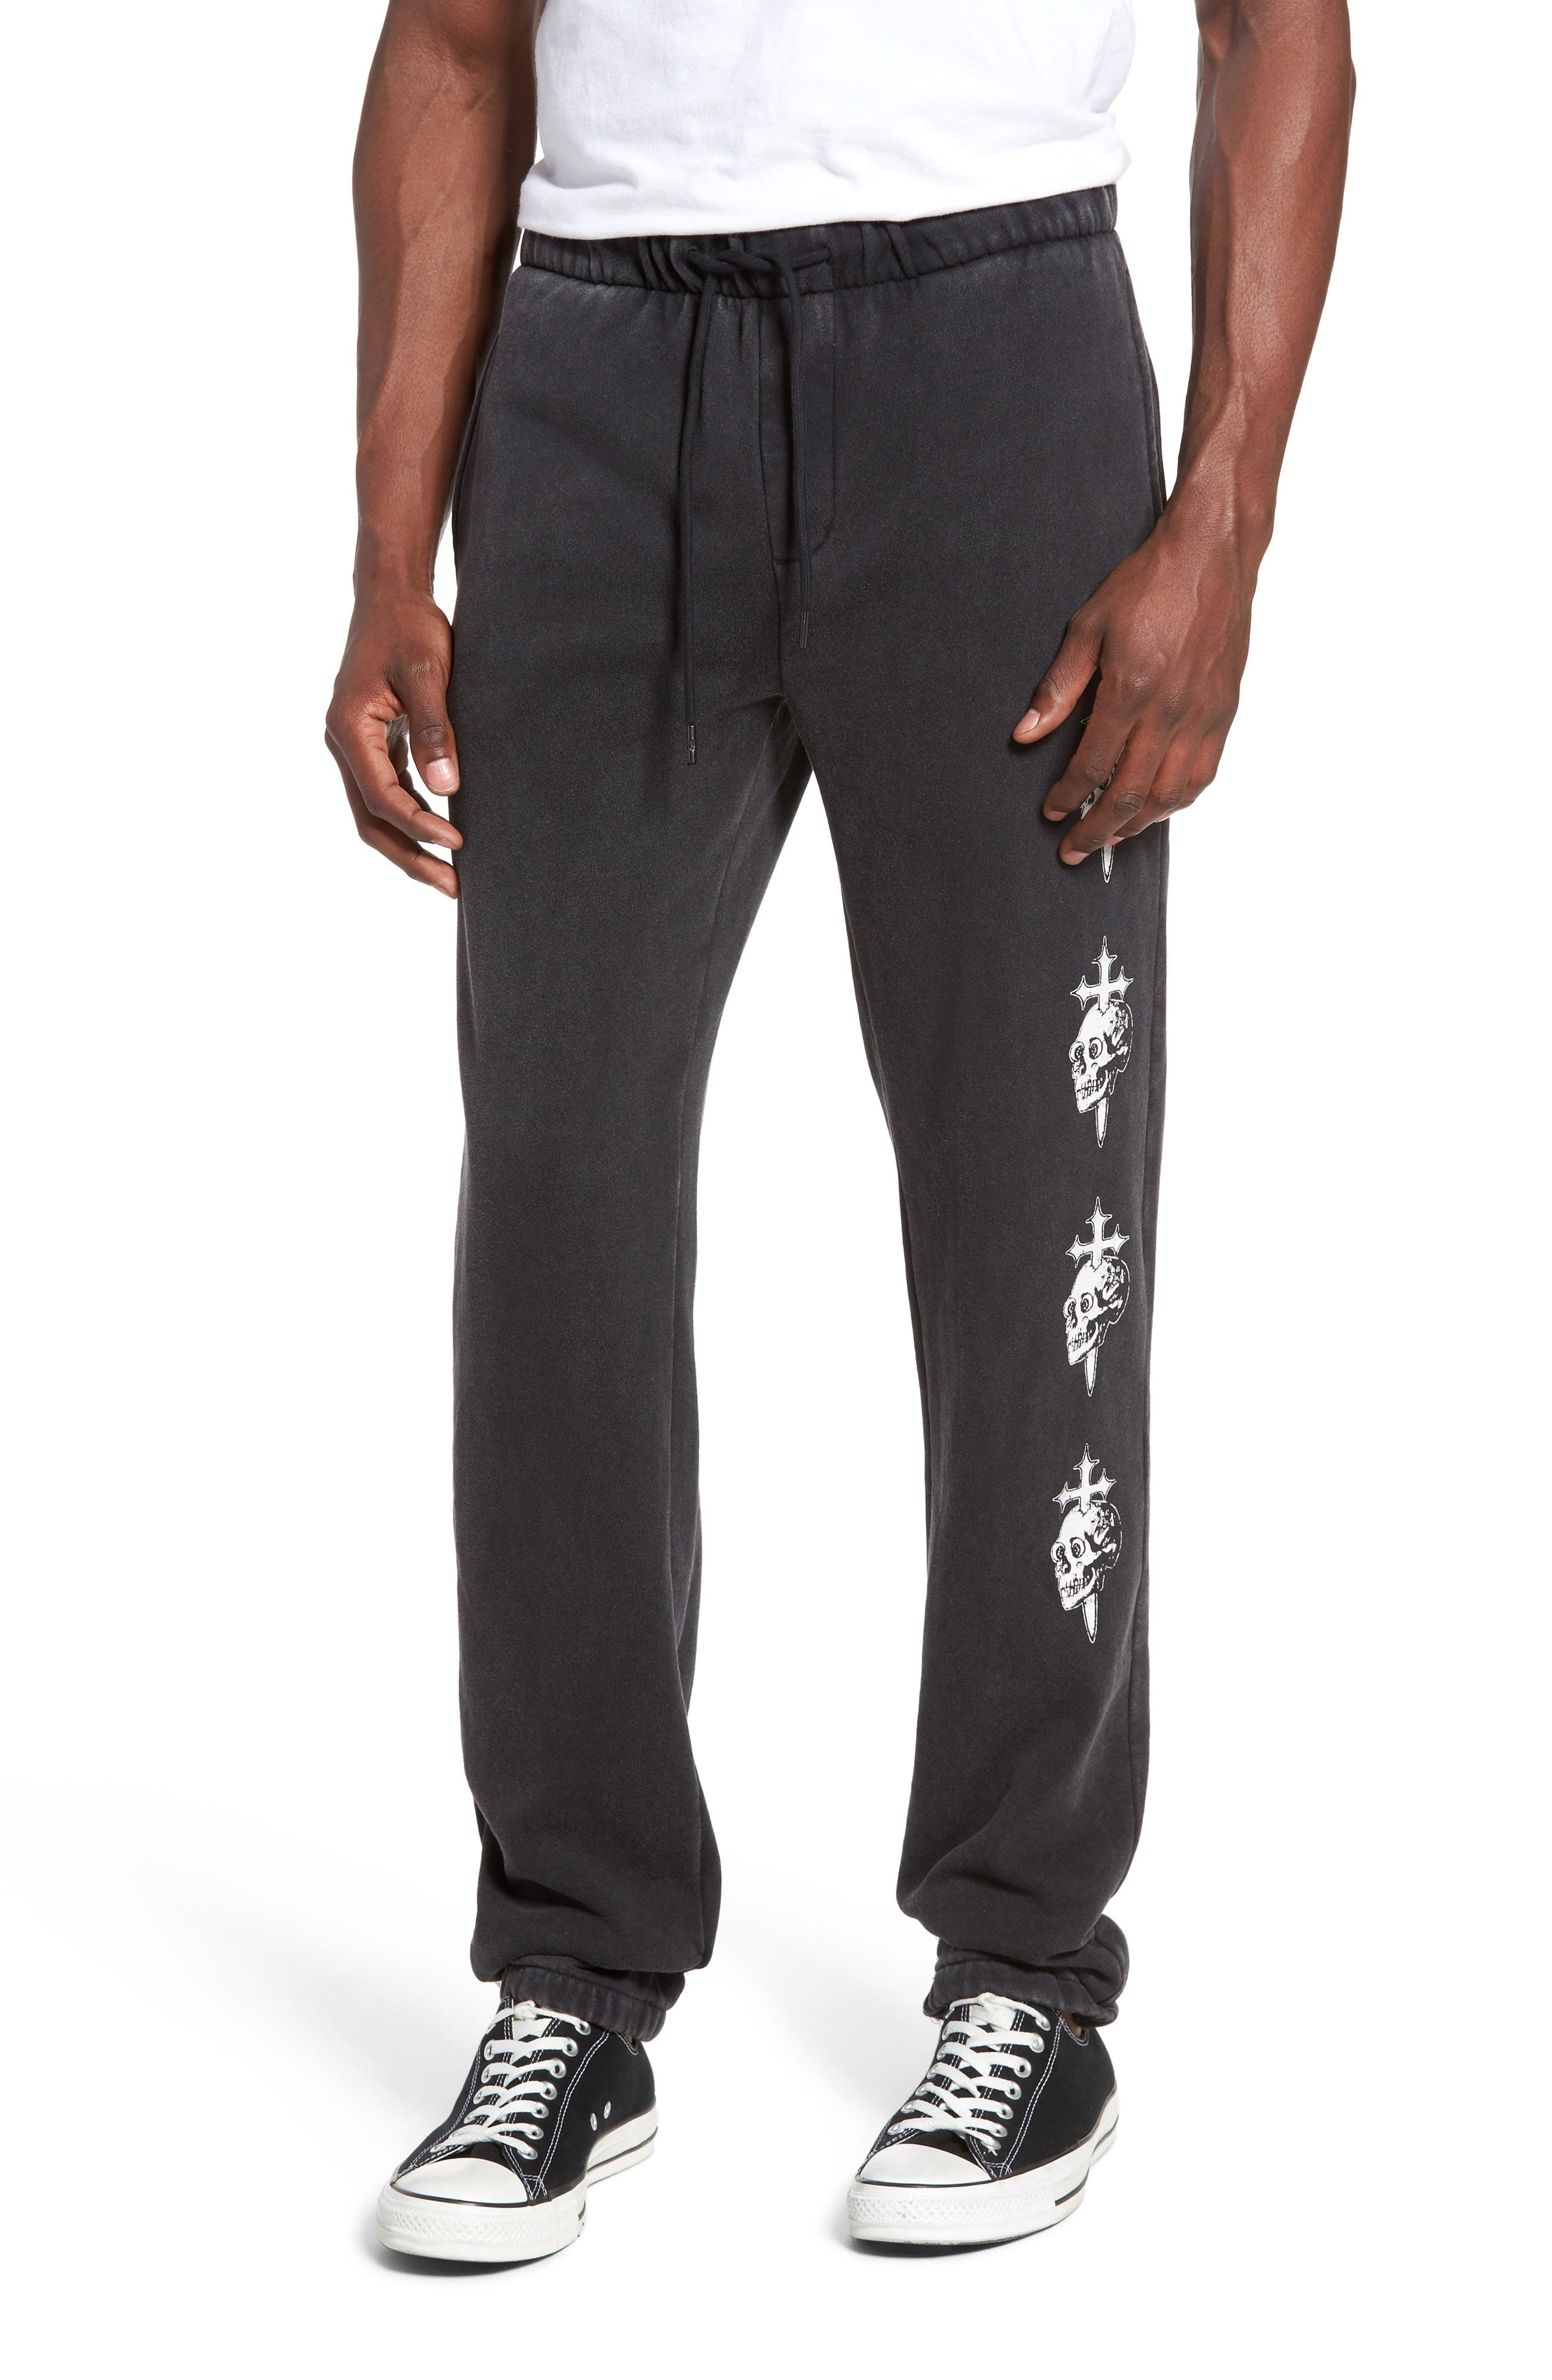 Skull Cross Print Sweatpants,                         Main,                         color, 002